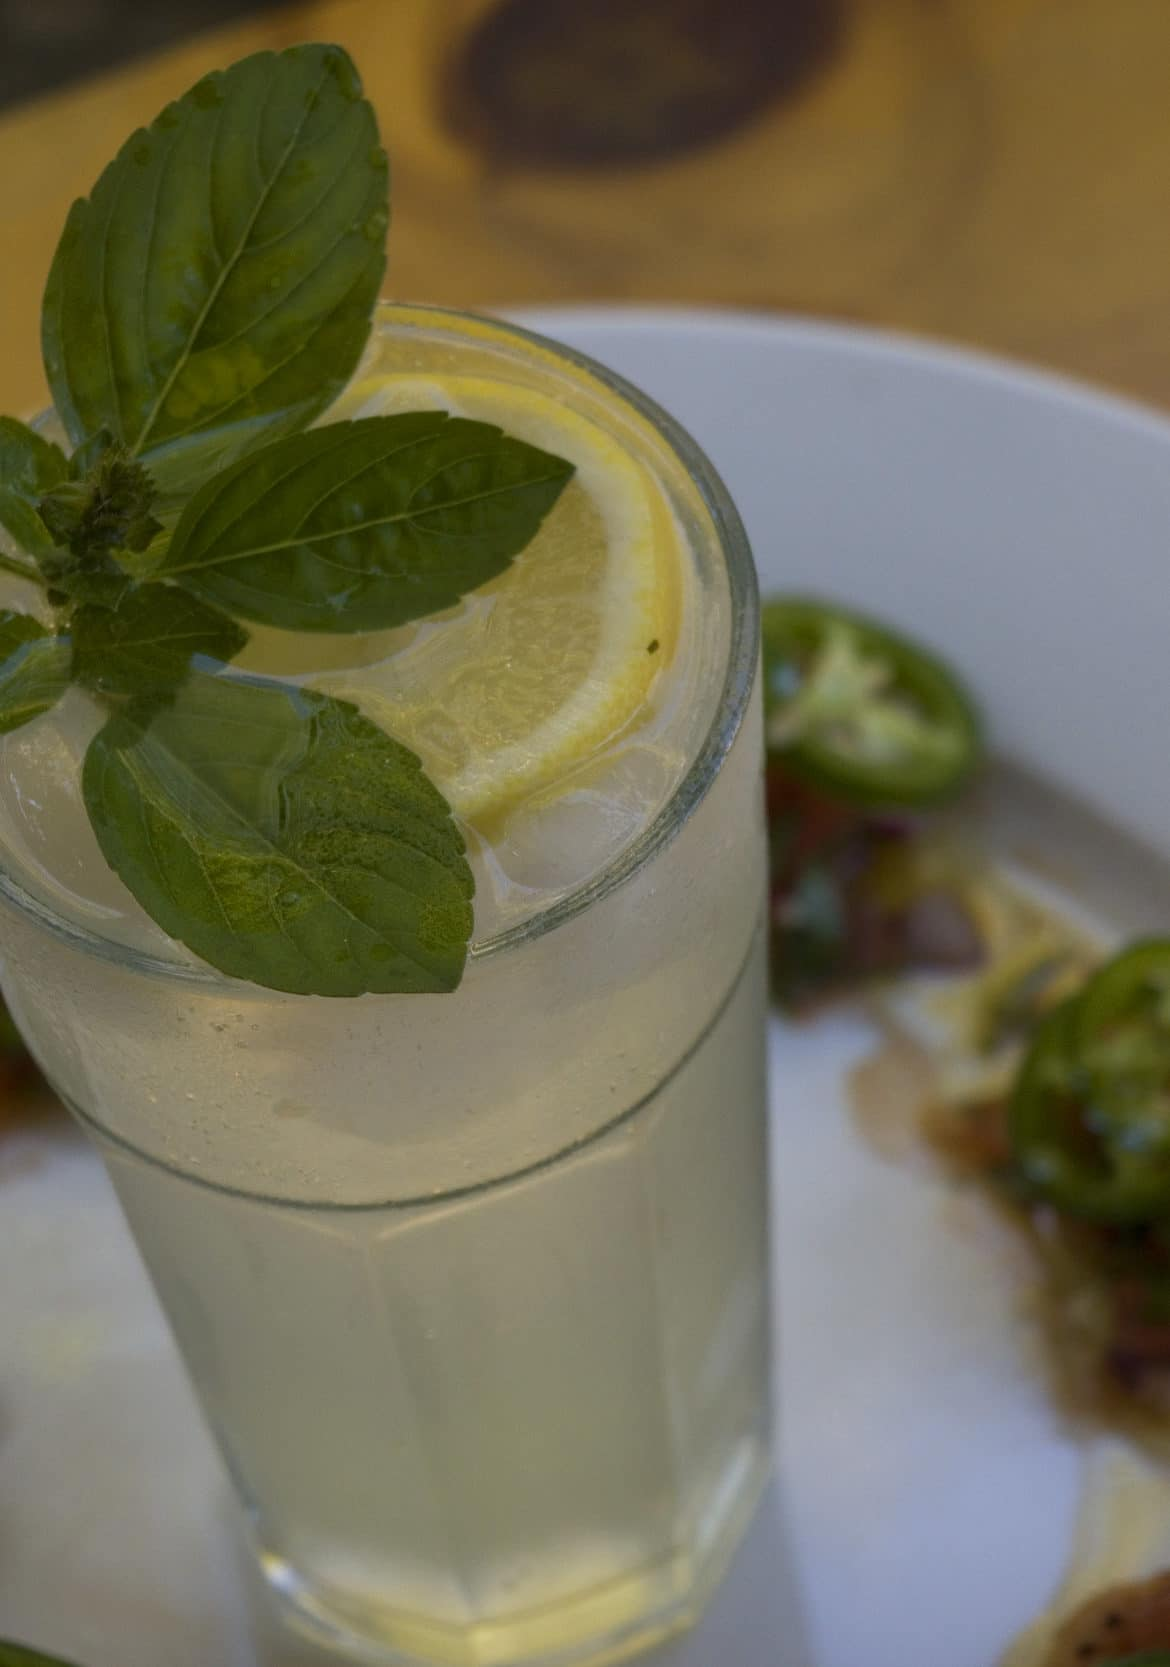 Tom Collins cocktail with scallops and pico de galo